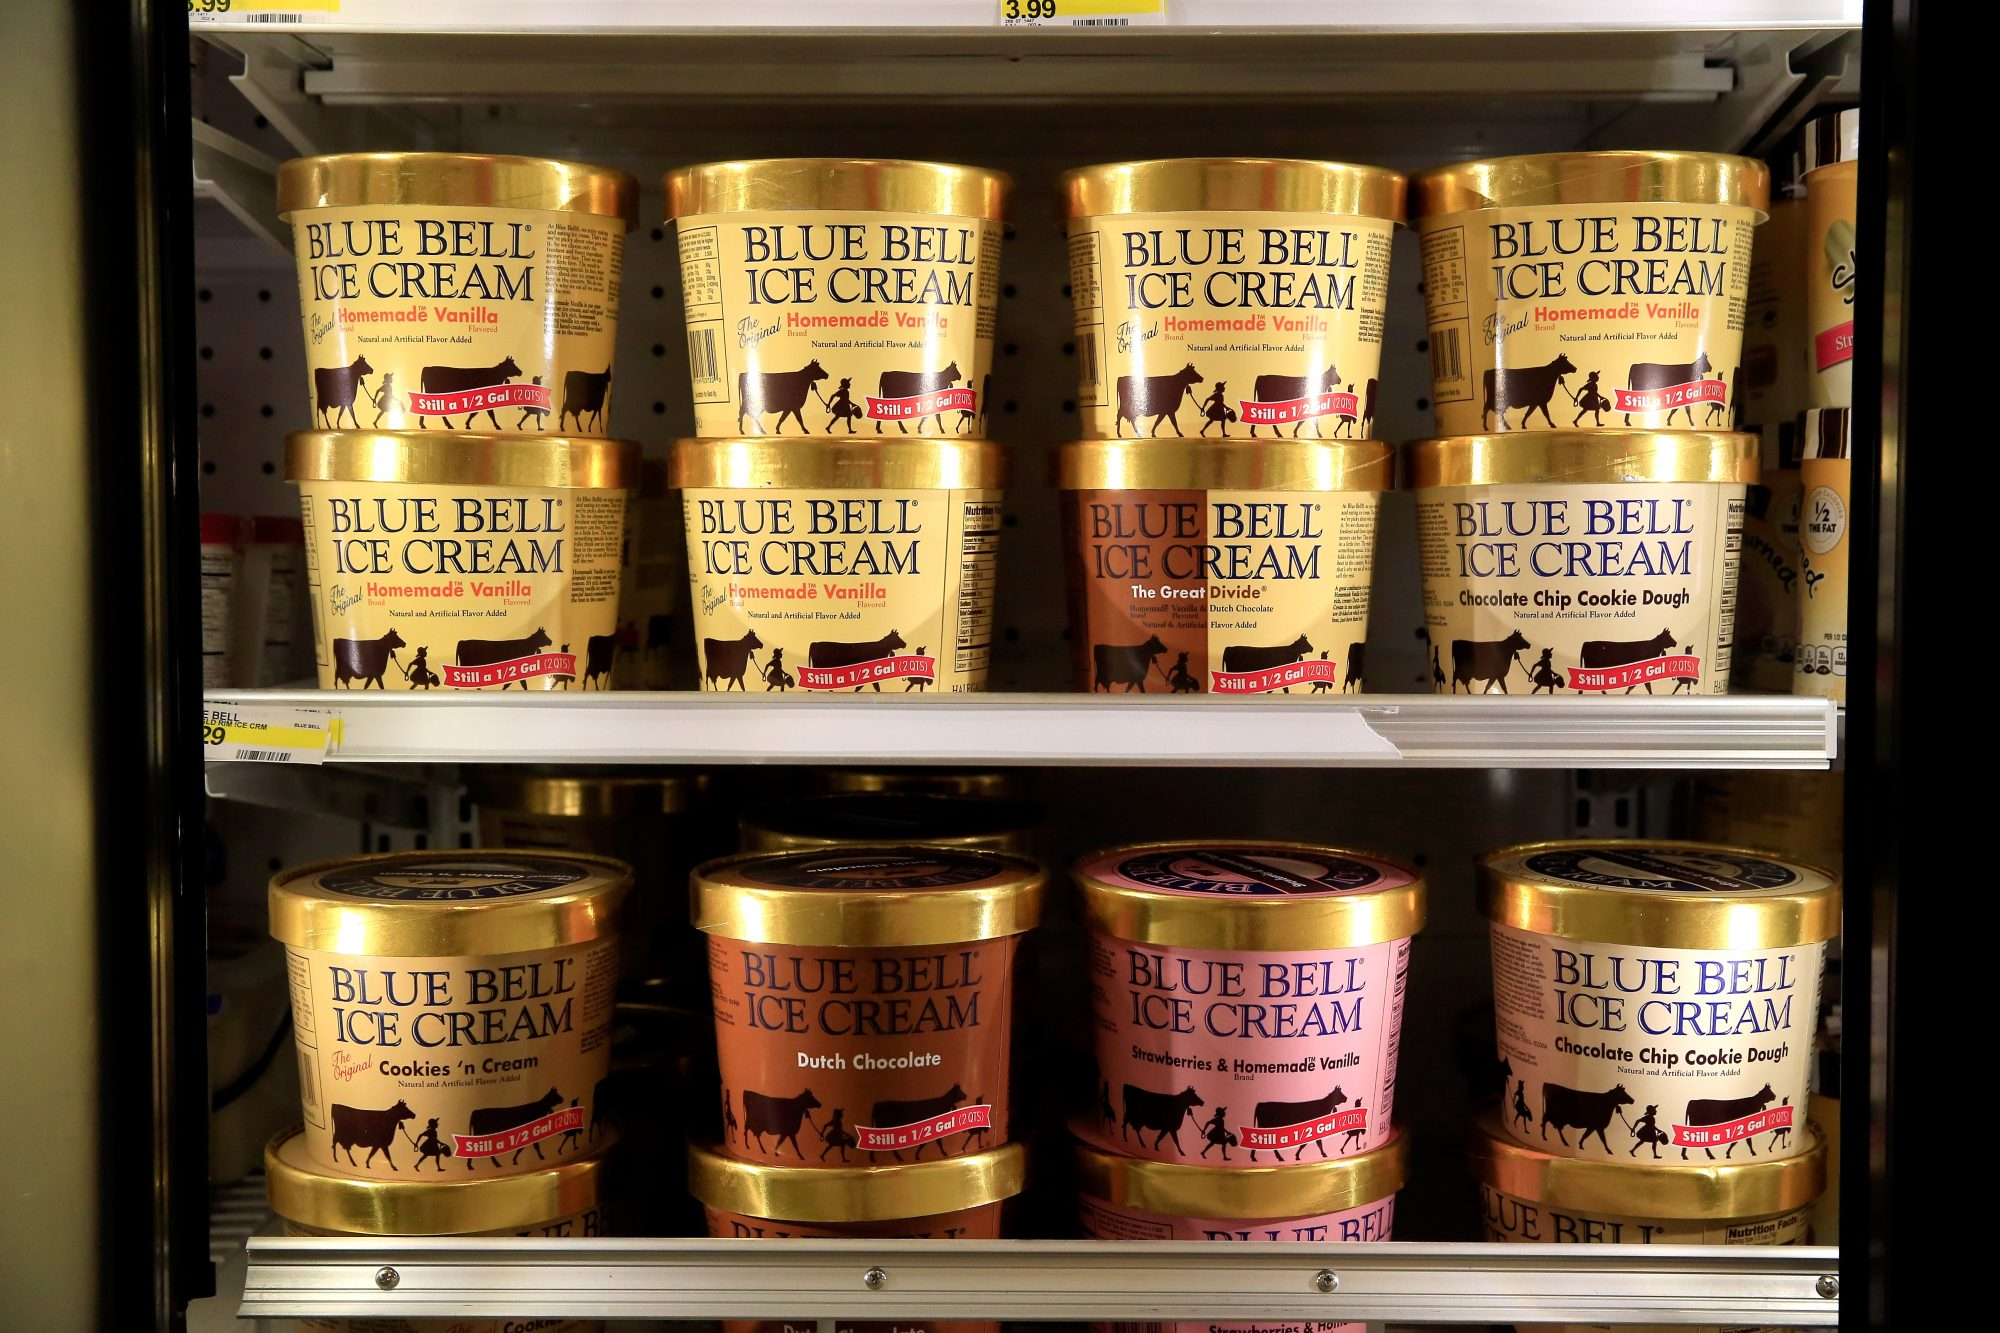 Blue Bell Ice Cream Containers